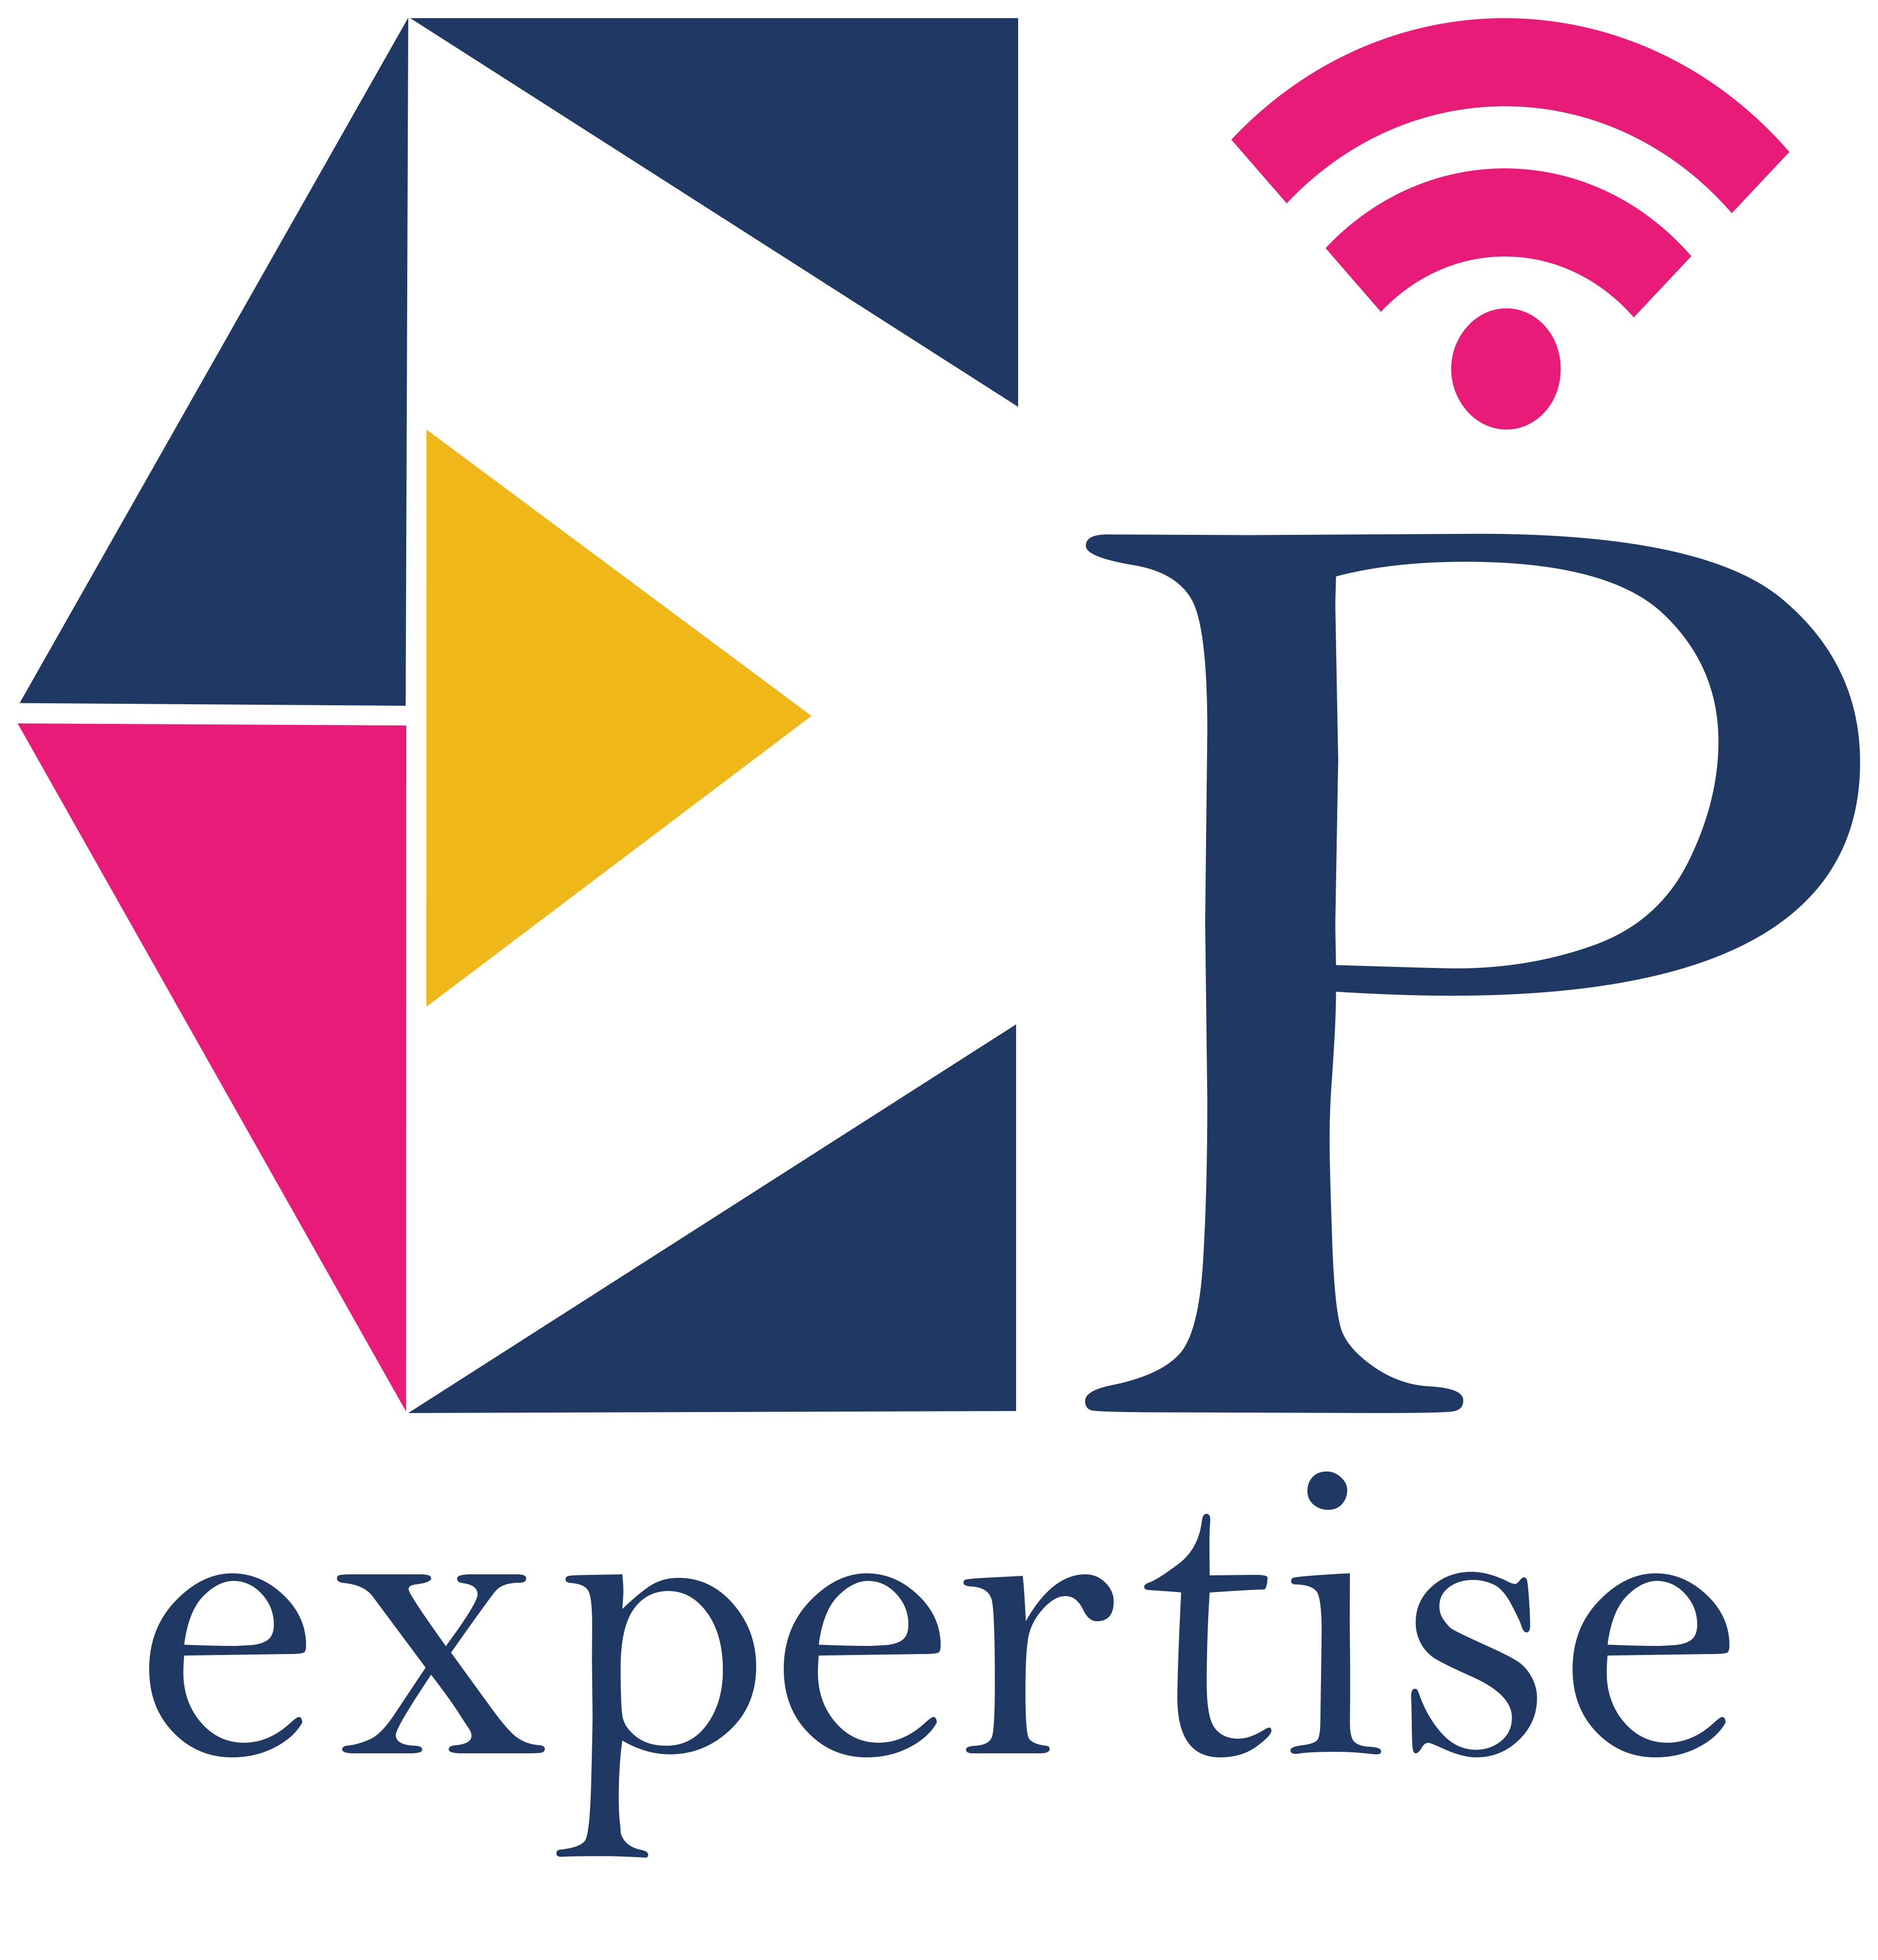 EP Expertise